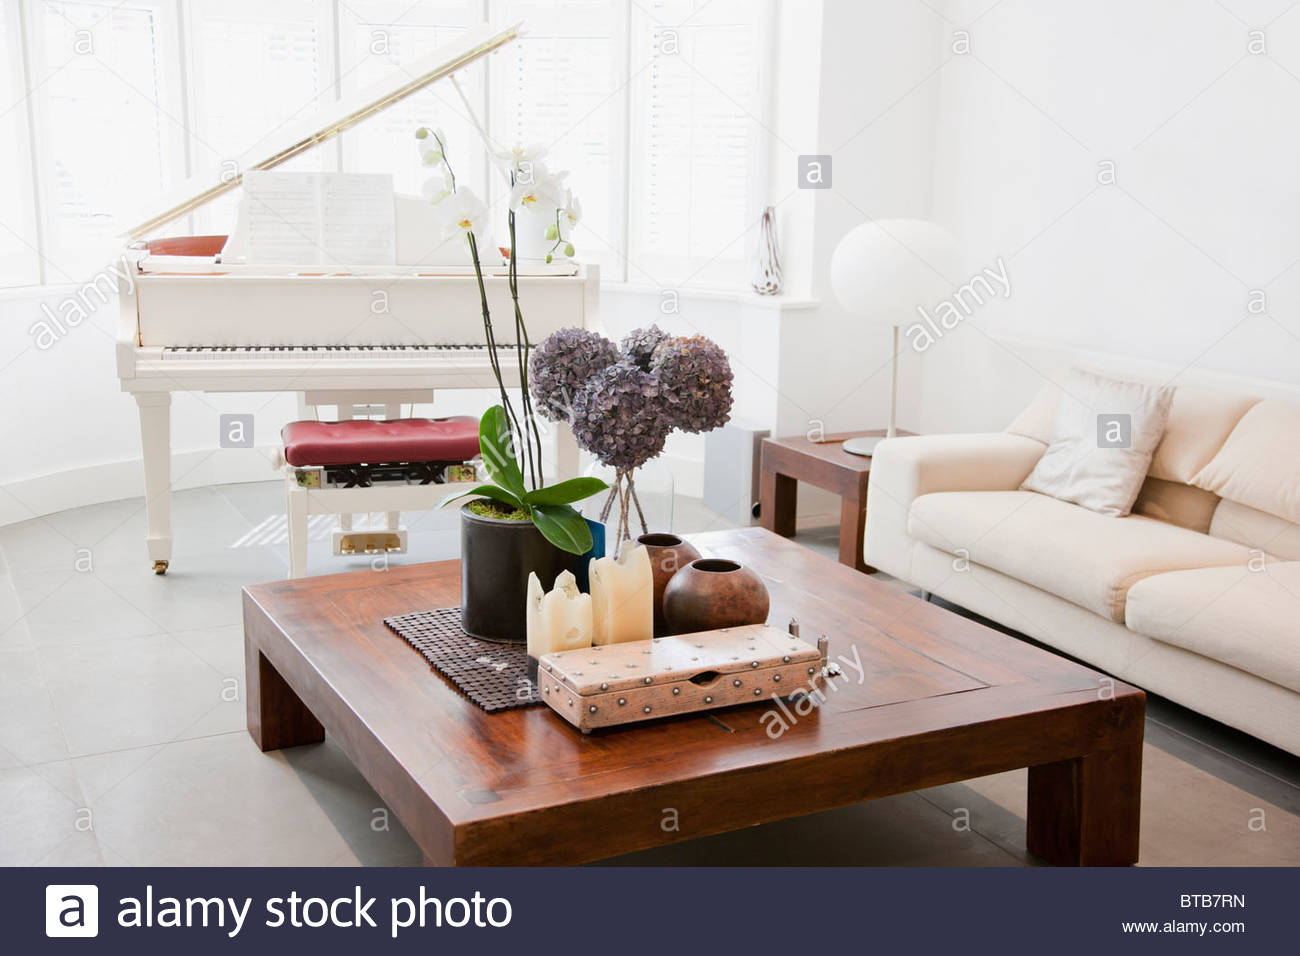 Piano and furniture in living room Stock Photo: 32209737 - Alamy